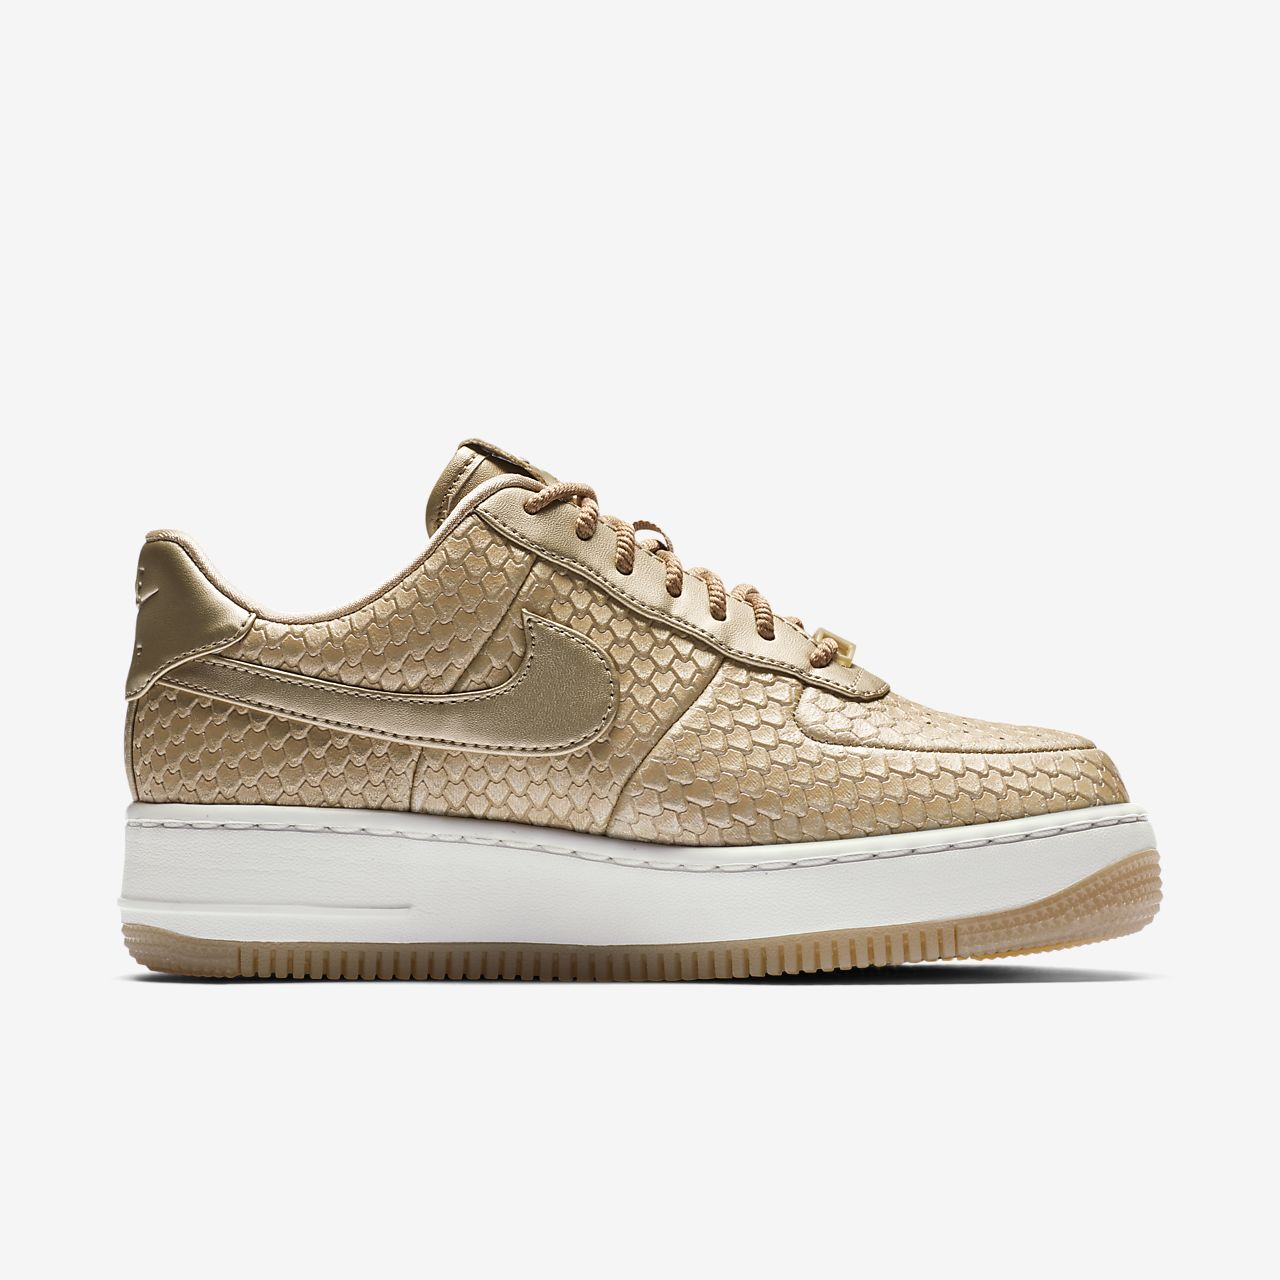 air force 1 tan and white nz